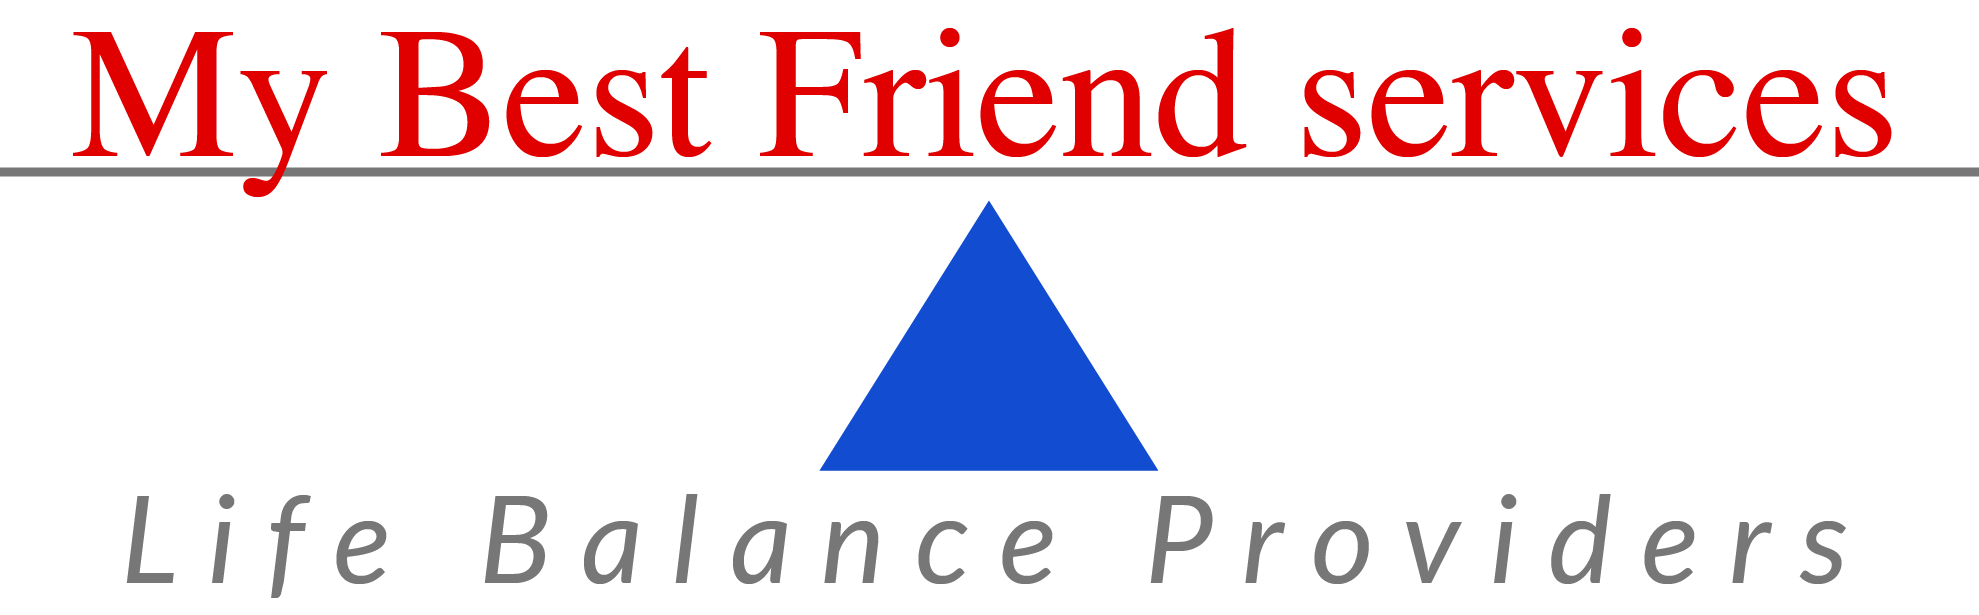 My Best Friend Services